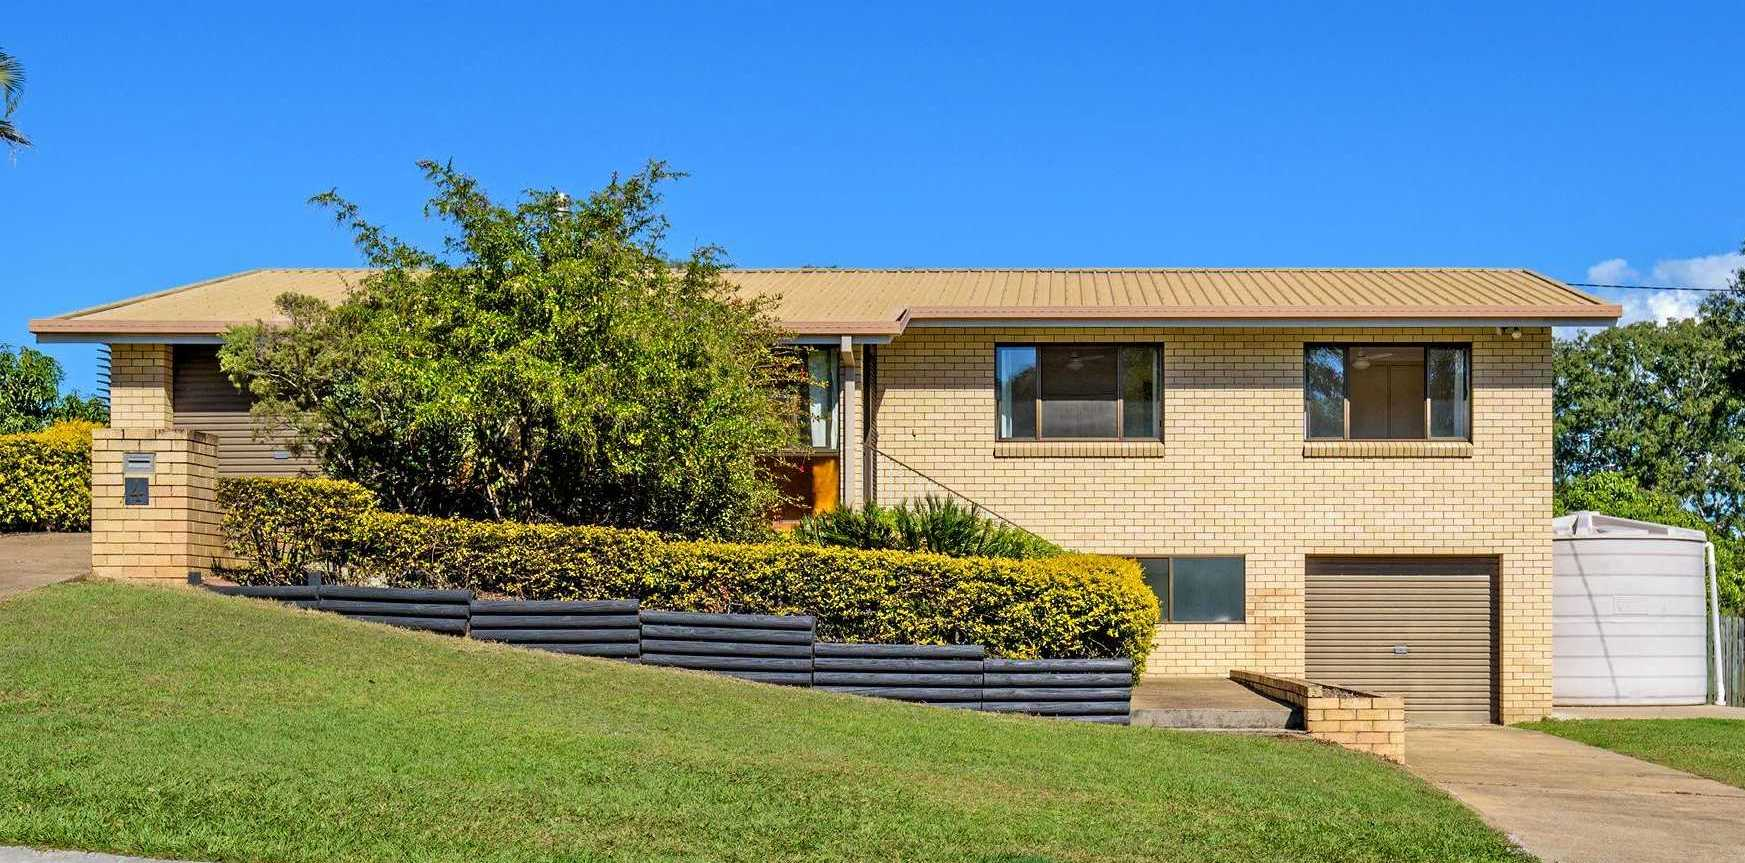 DON'T MISS: 4 Dalee St, Jones Hill is one of many open homes to be viewed this weekend.